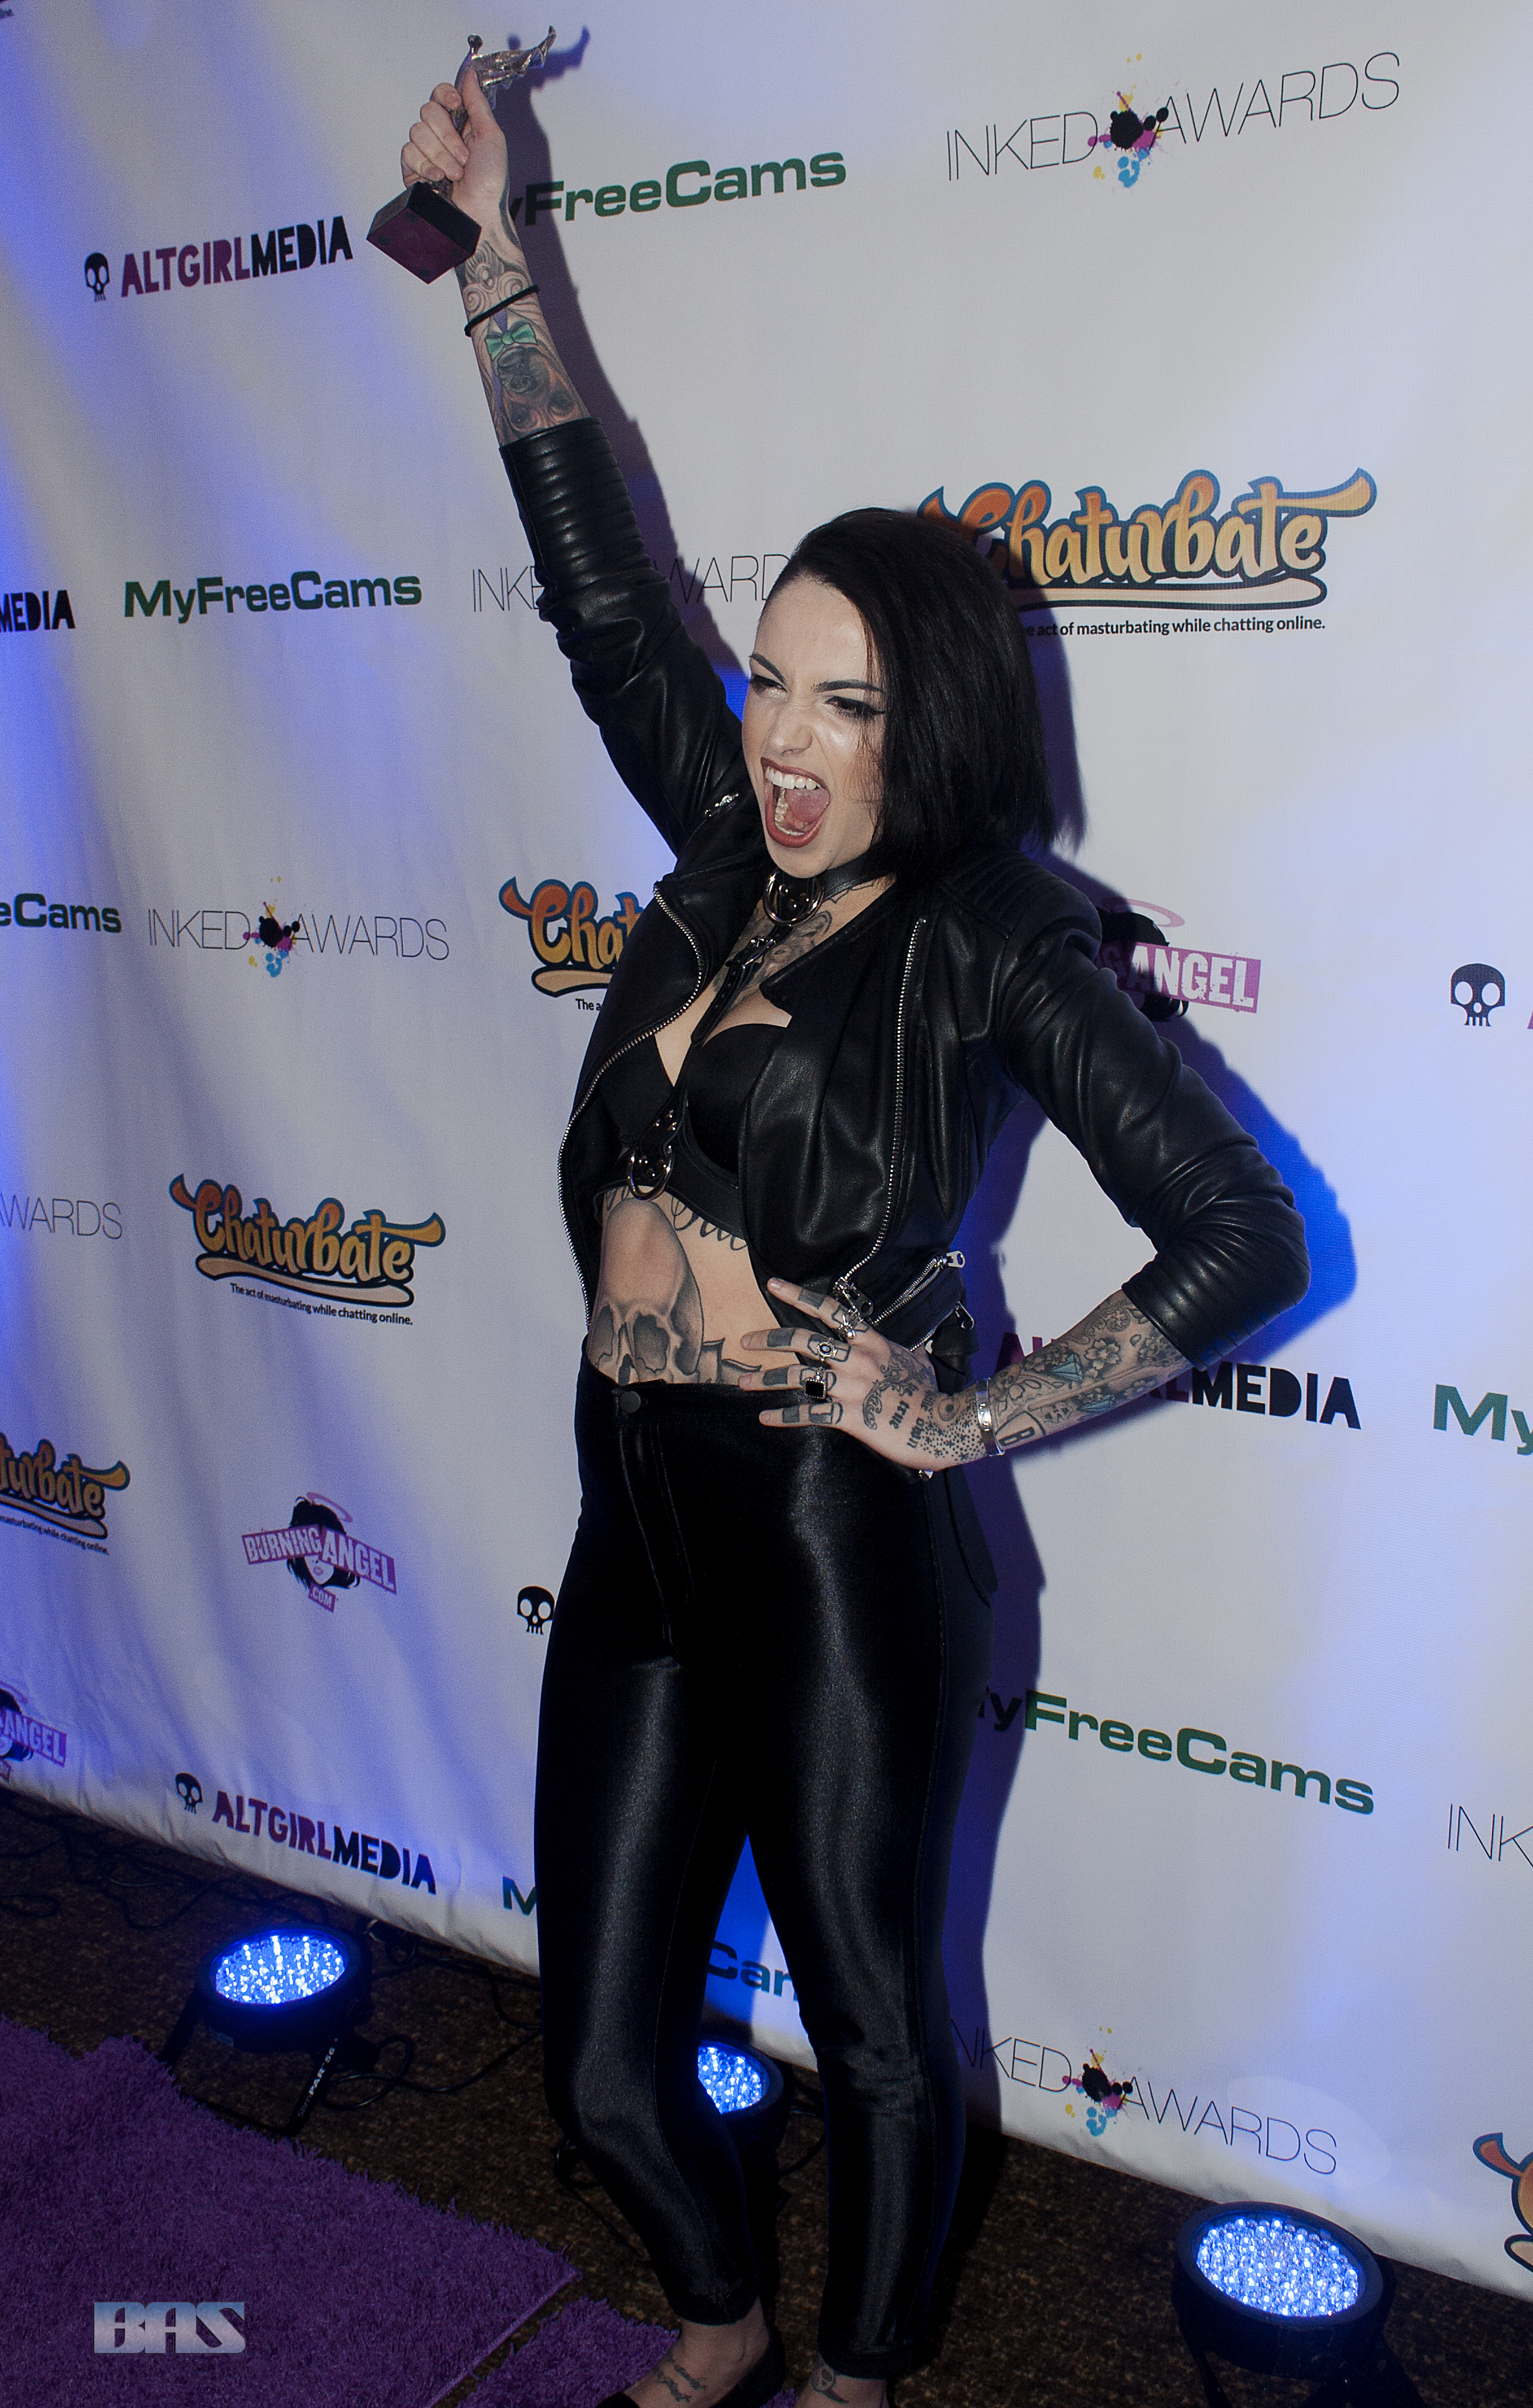 Leigh_Raven_at_Inked_Awards_2016_(31144360393)